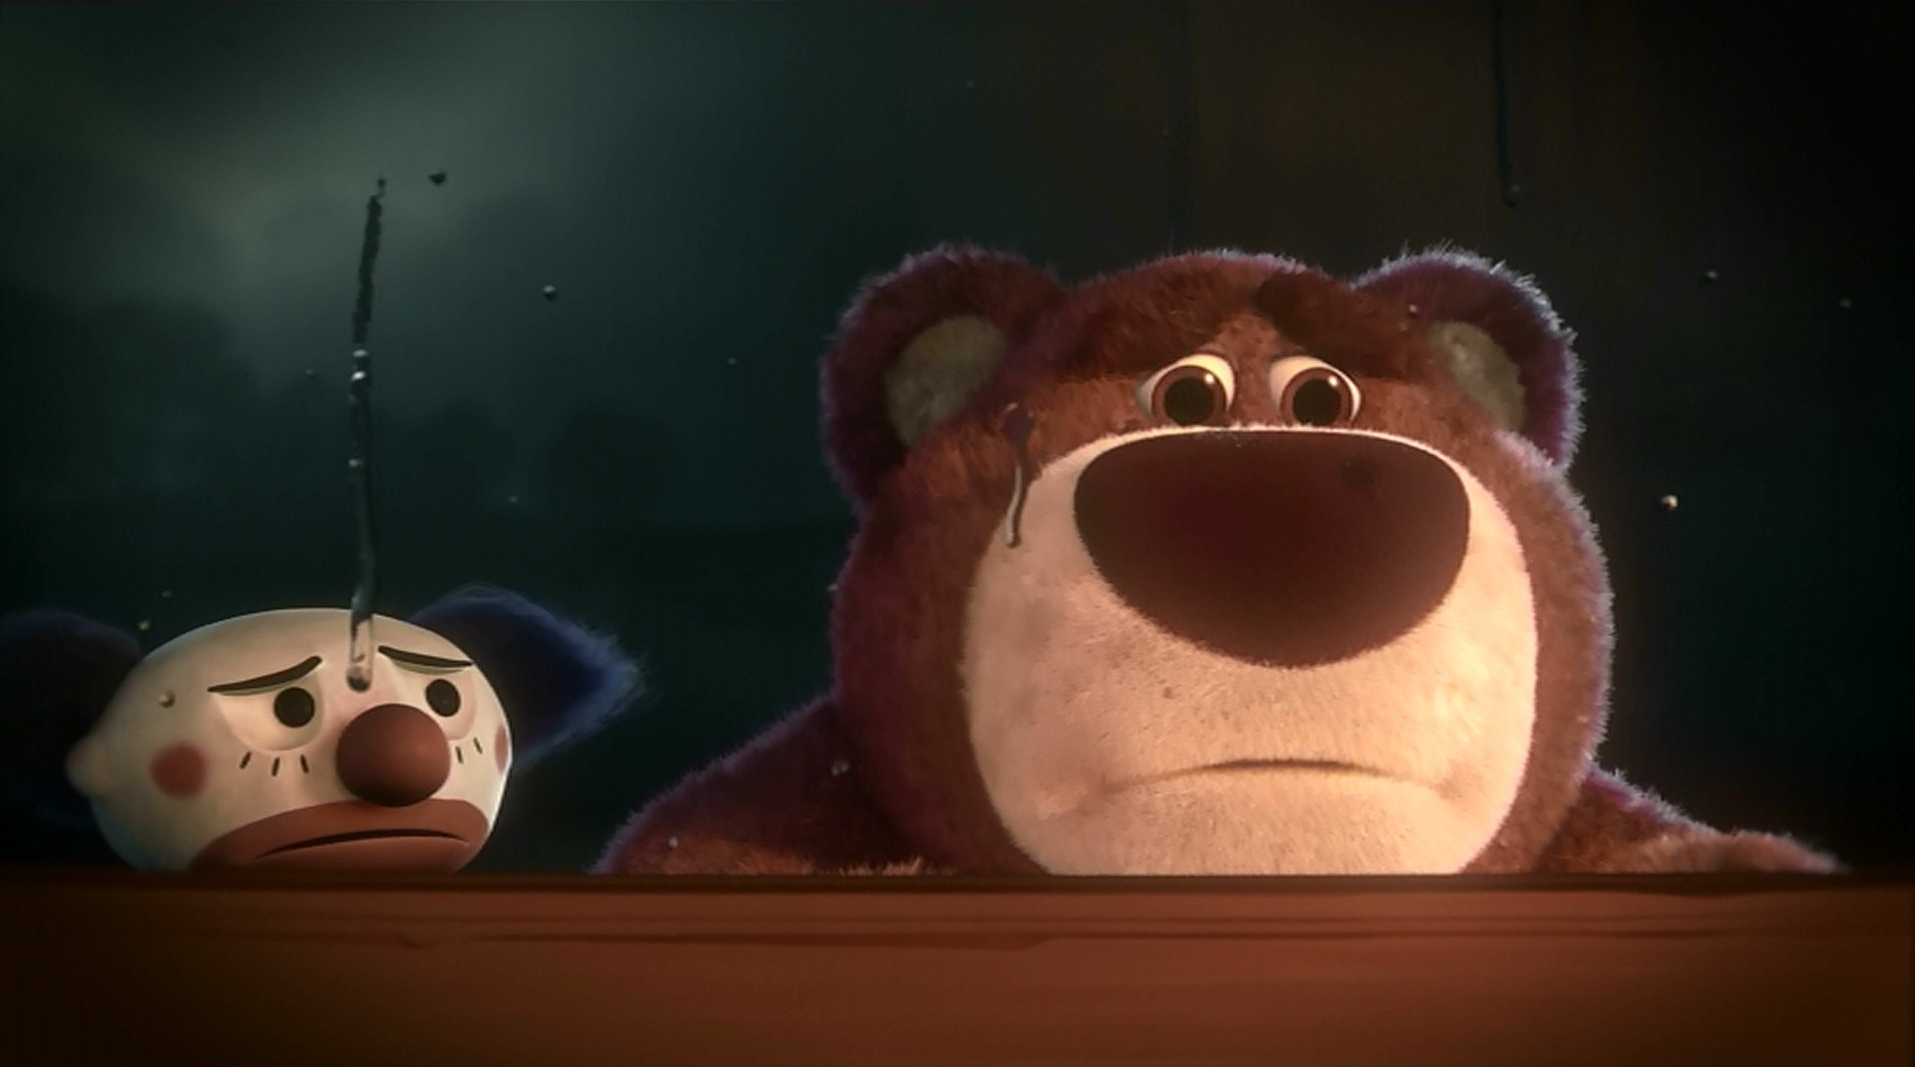 Toy Story 3 - Lotso